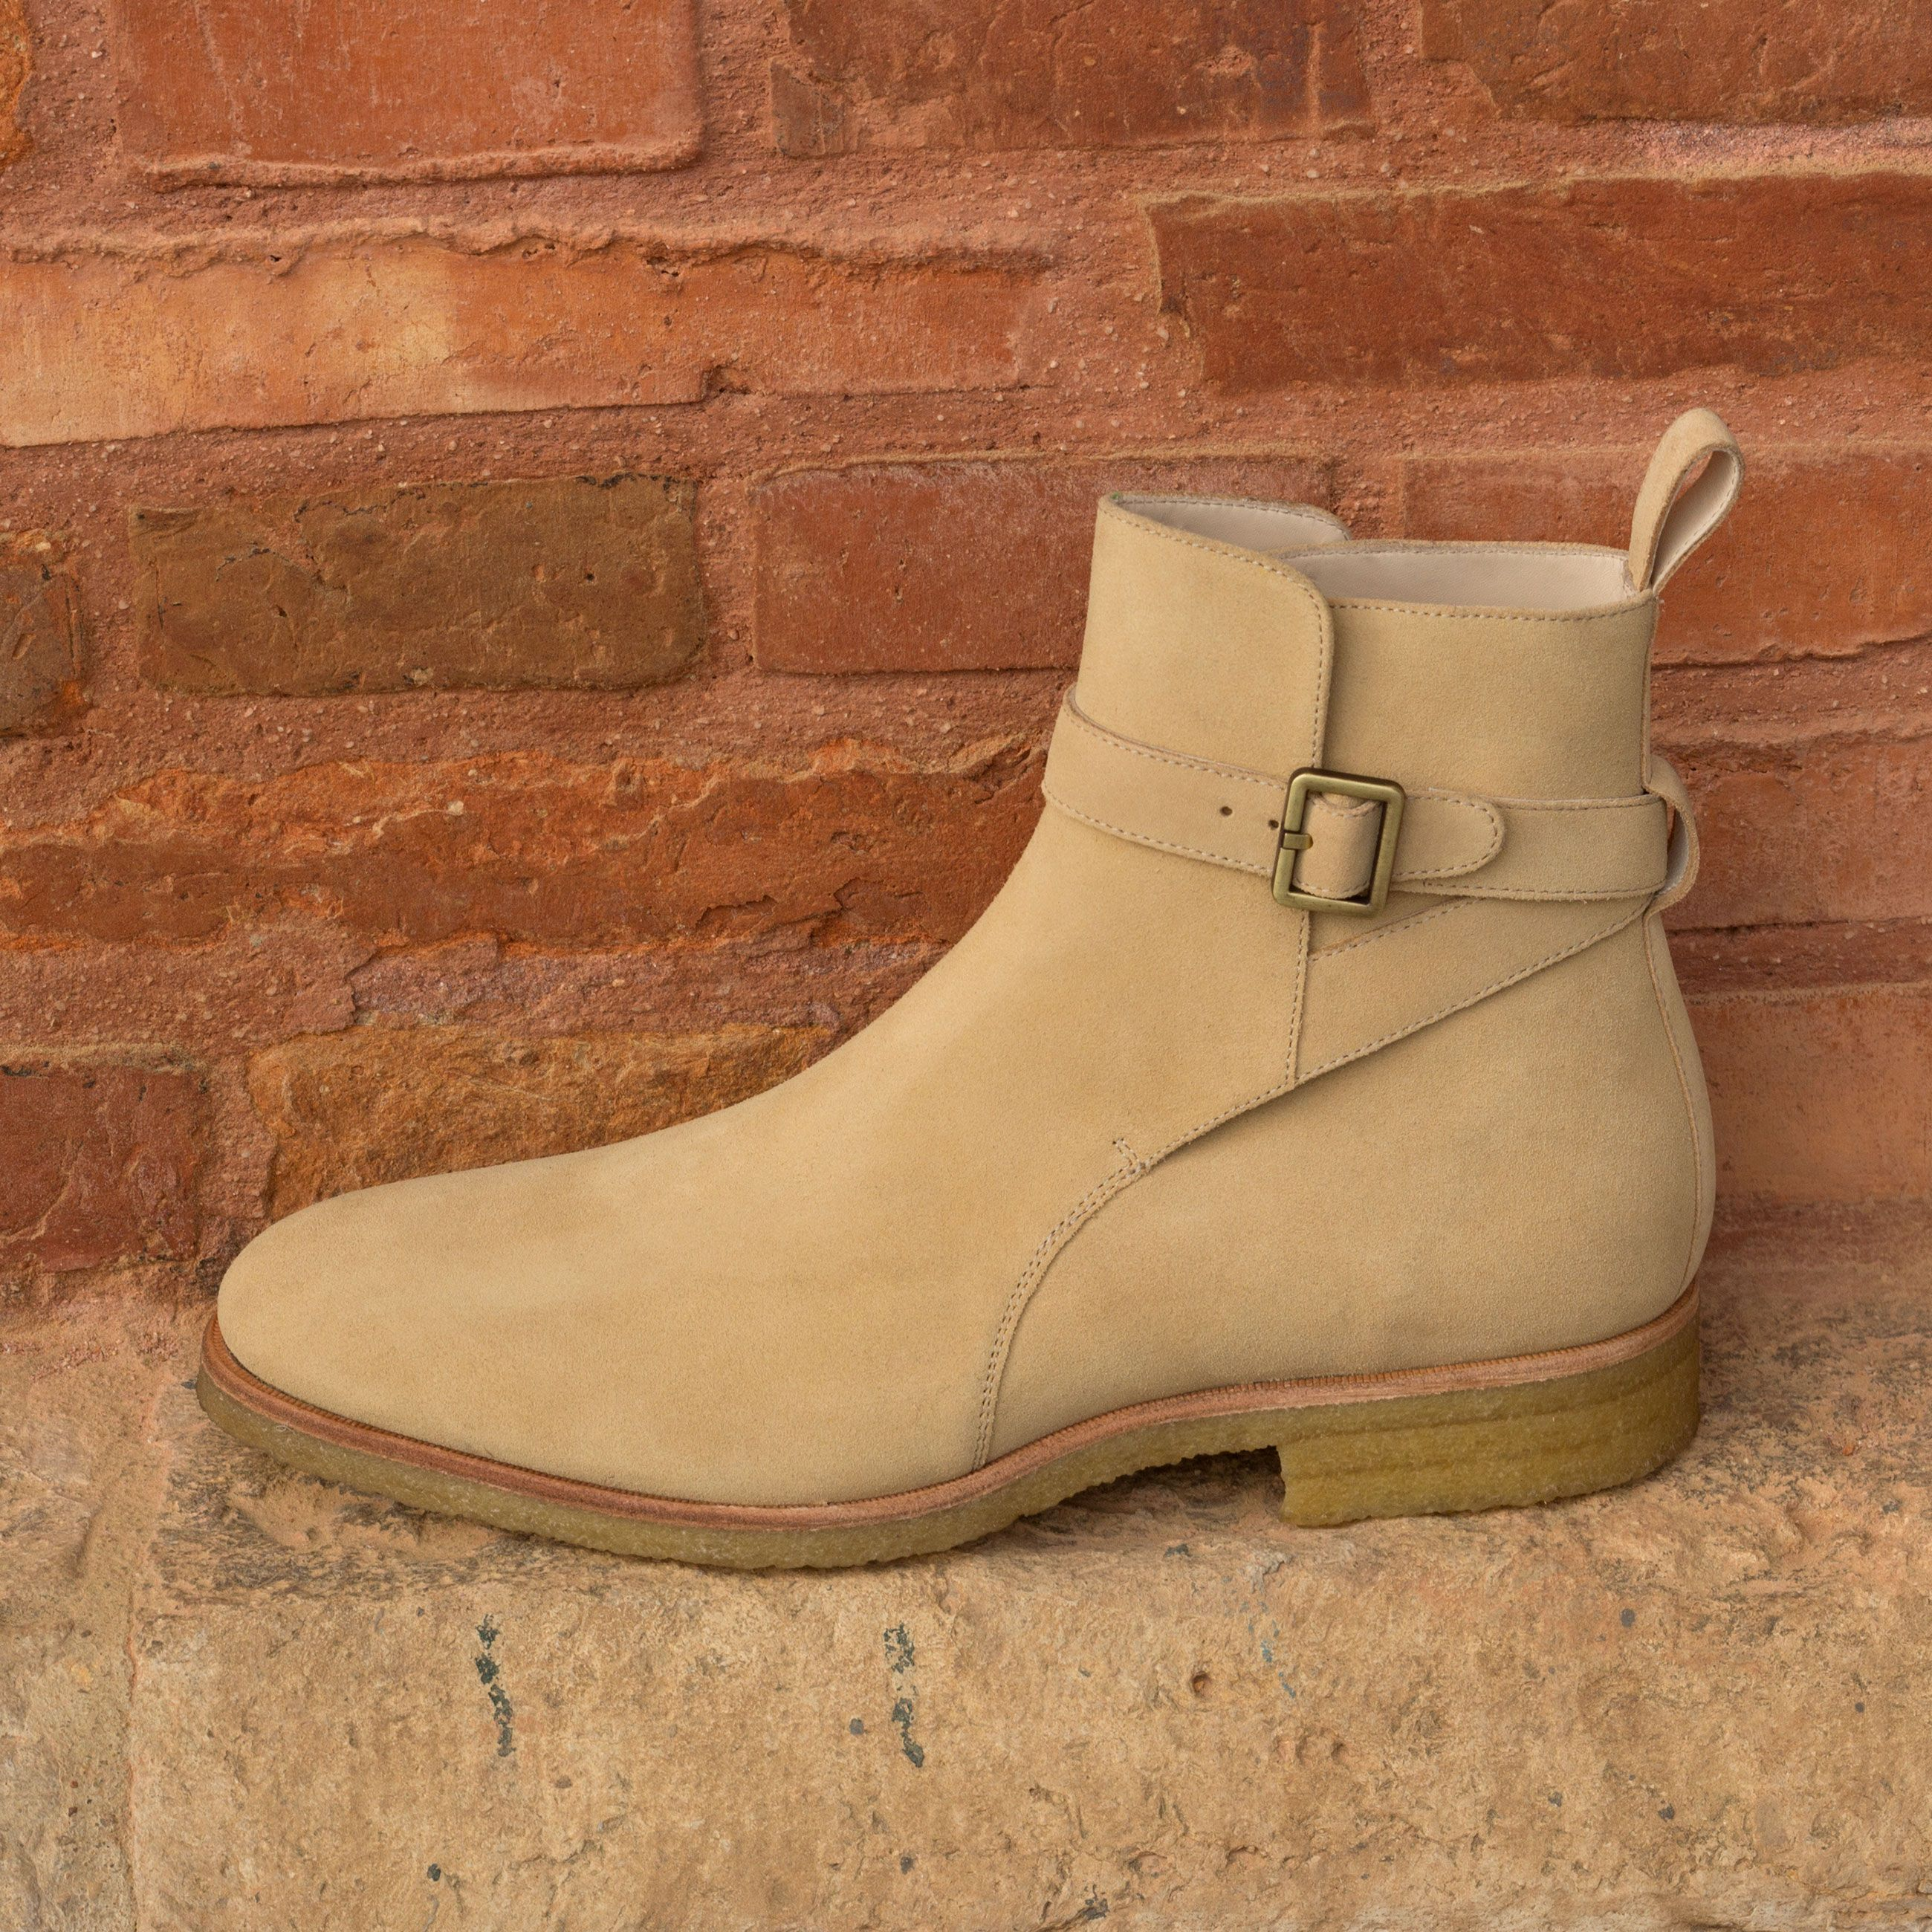 Custom Made Jodhpur Boot in Sand Luxe Suede  Robert August Apparel is part of Handcrafted boots - Handcrafted Custom Made Jodhpur Boot in Sand Luxe Suede From Robert August  Create your own custom designed shoes shoes shoesoftheday dapper menswear mensfashion luxurylifestyle success hot style bespoke luxury